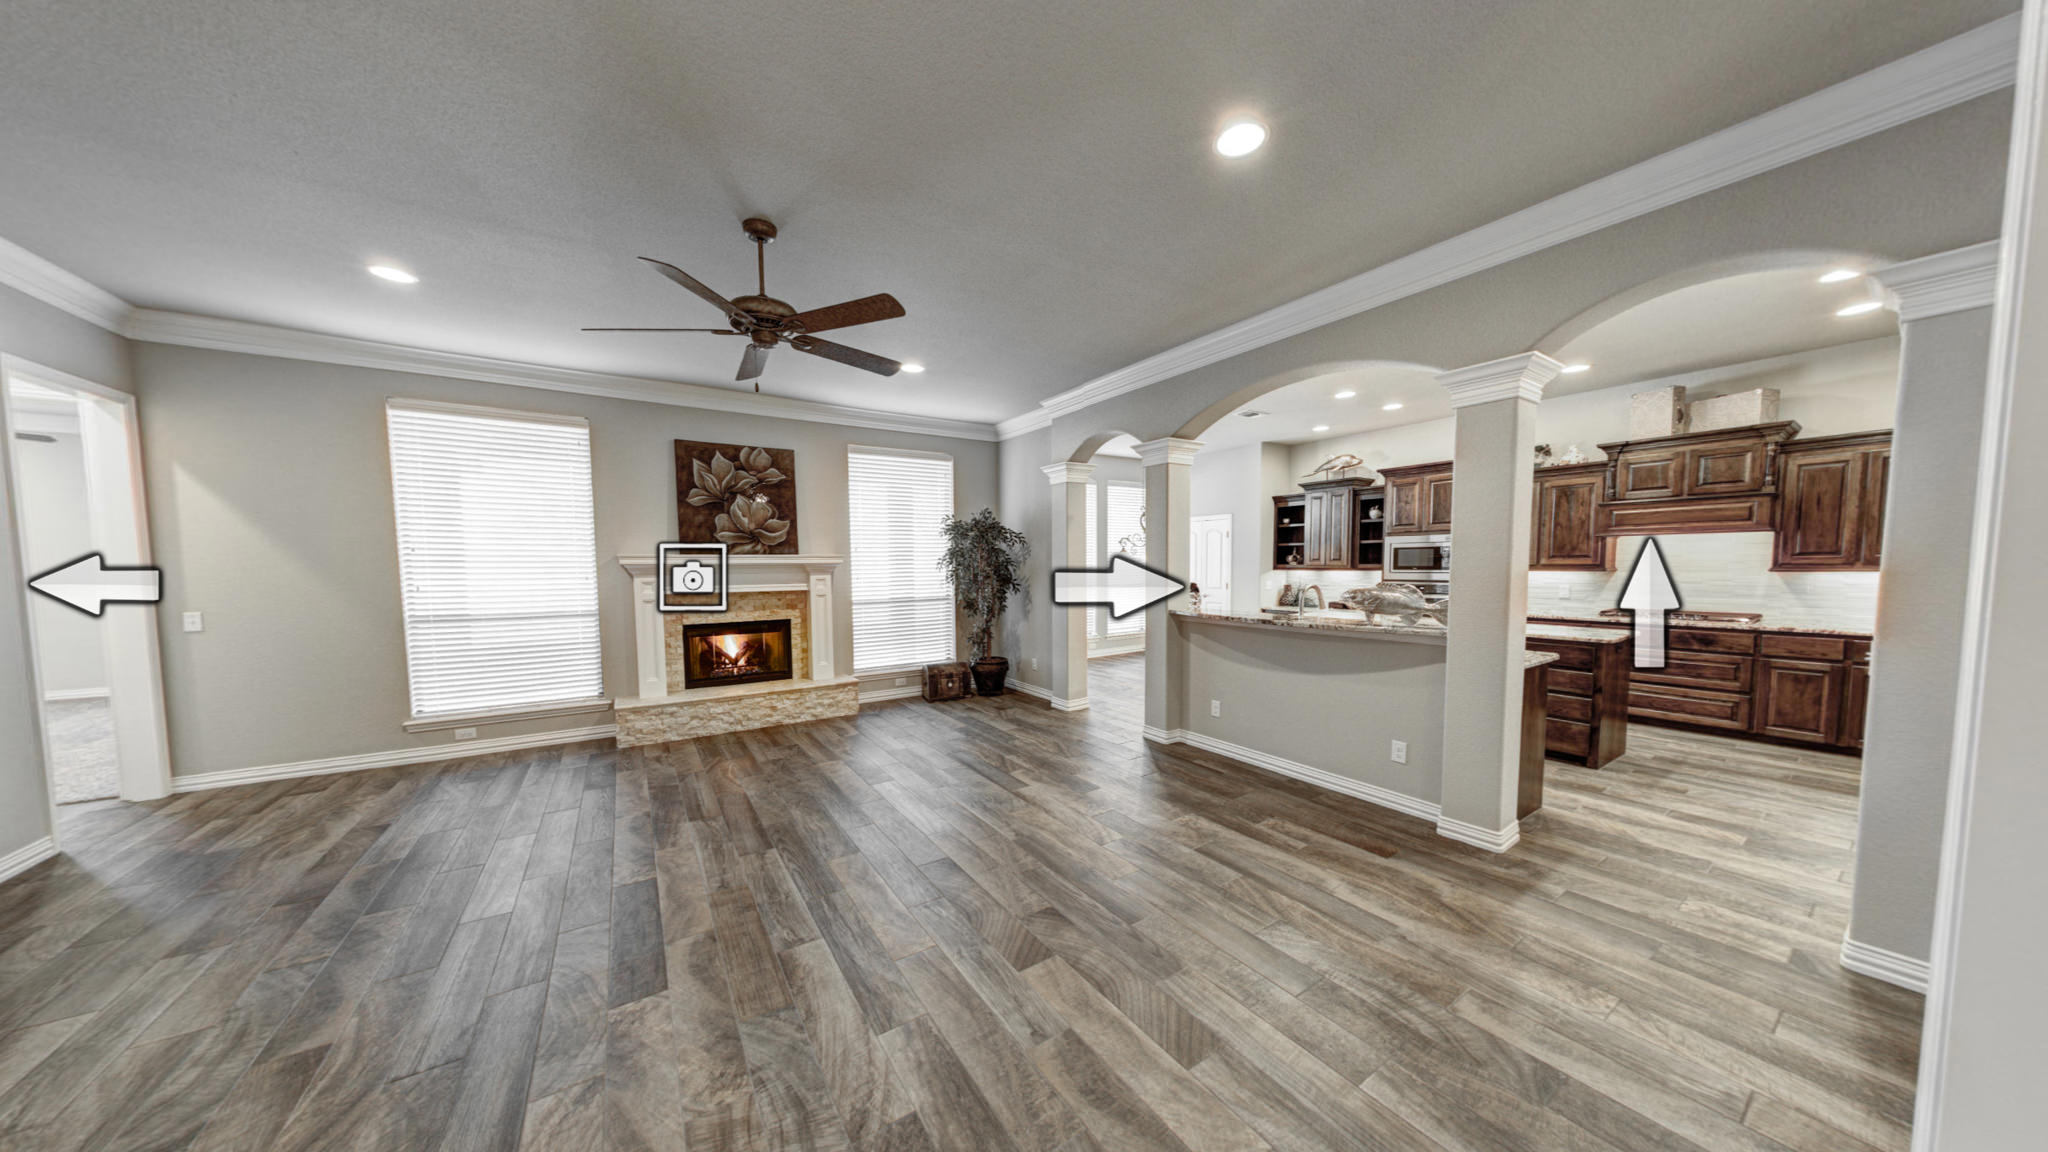 Photo of a new home for sale in Wichita Falls, TX.